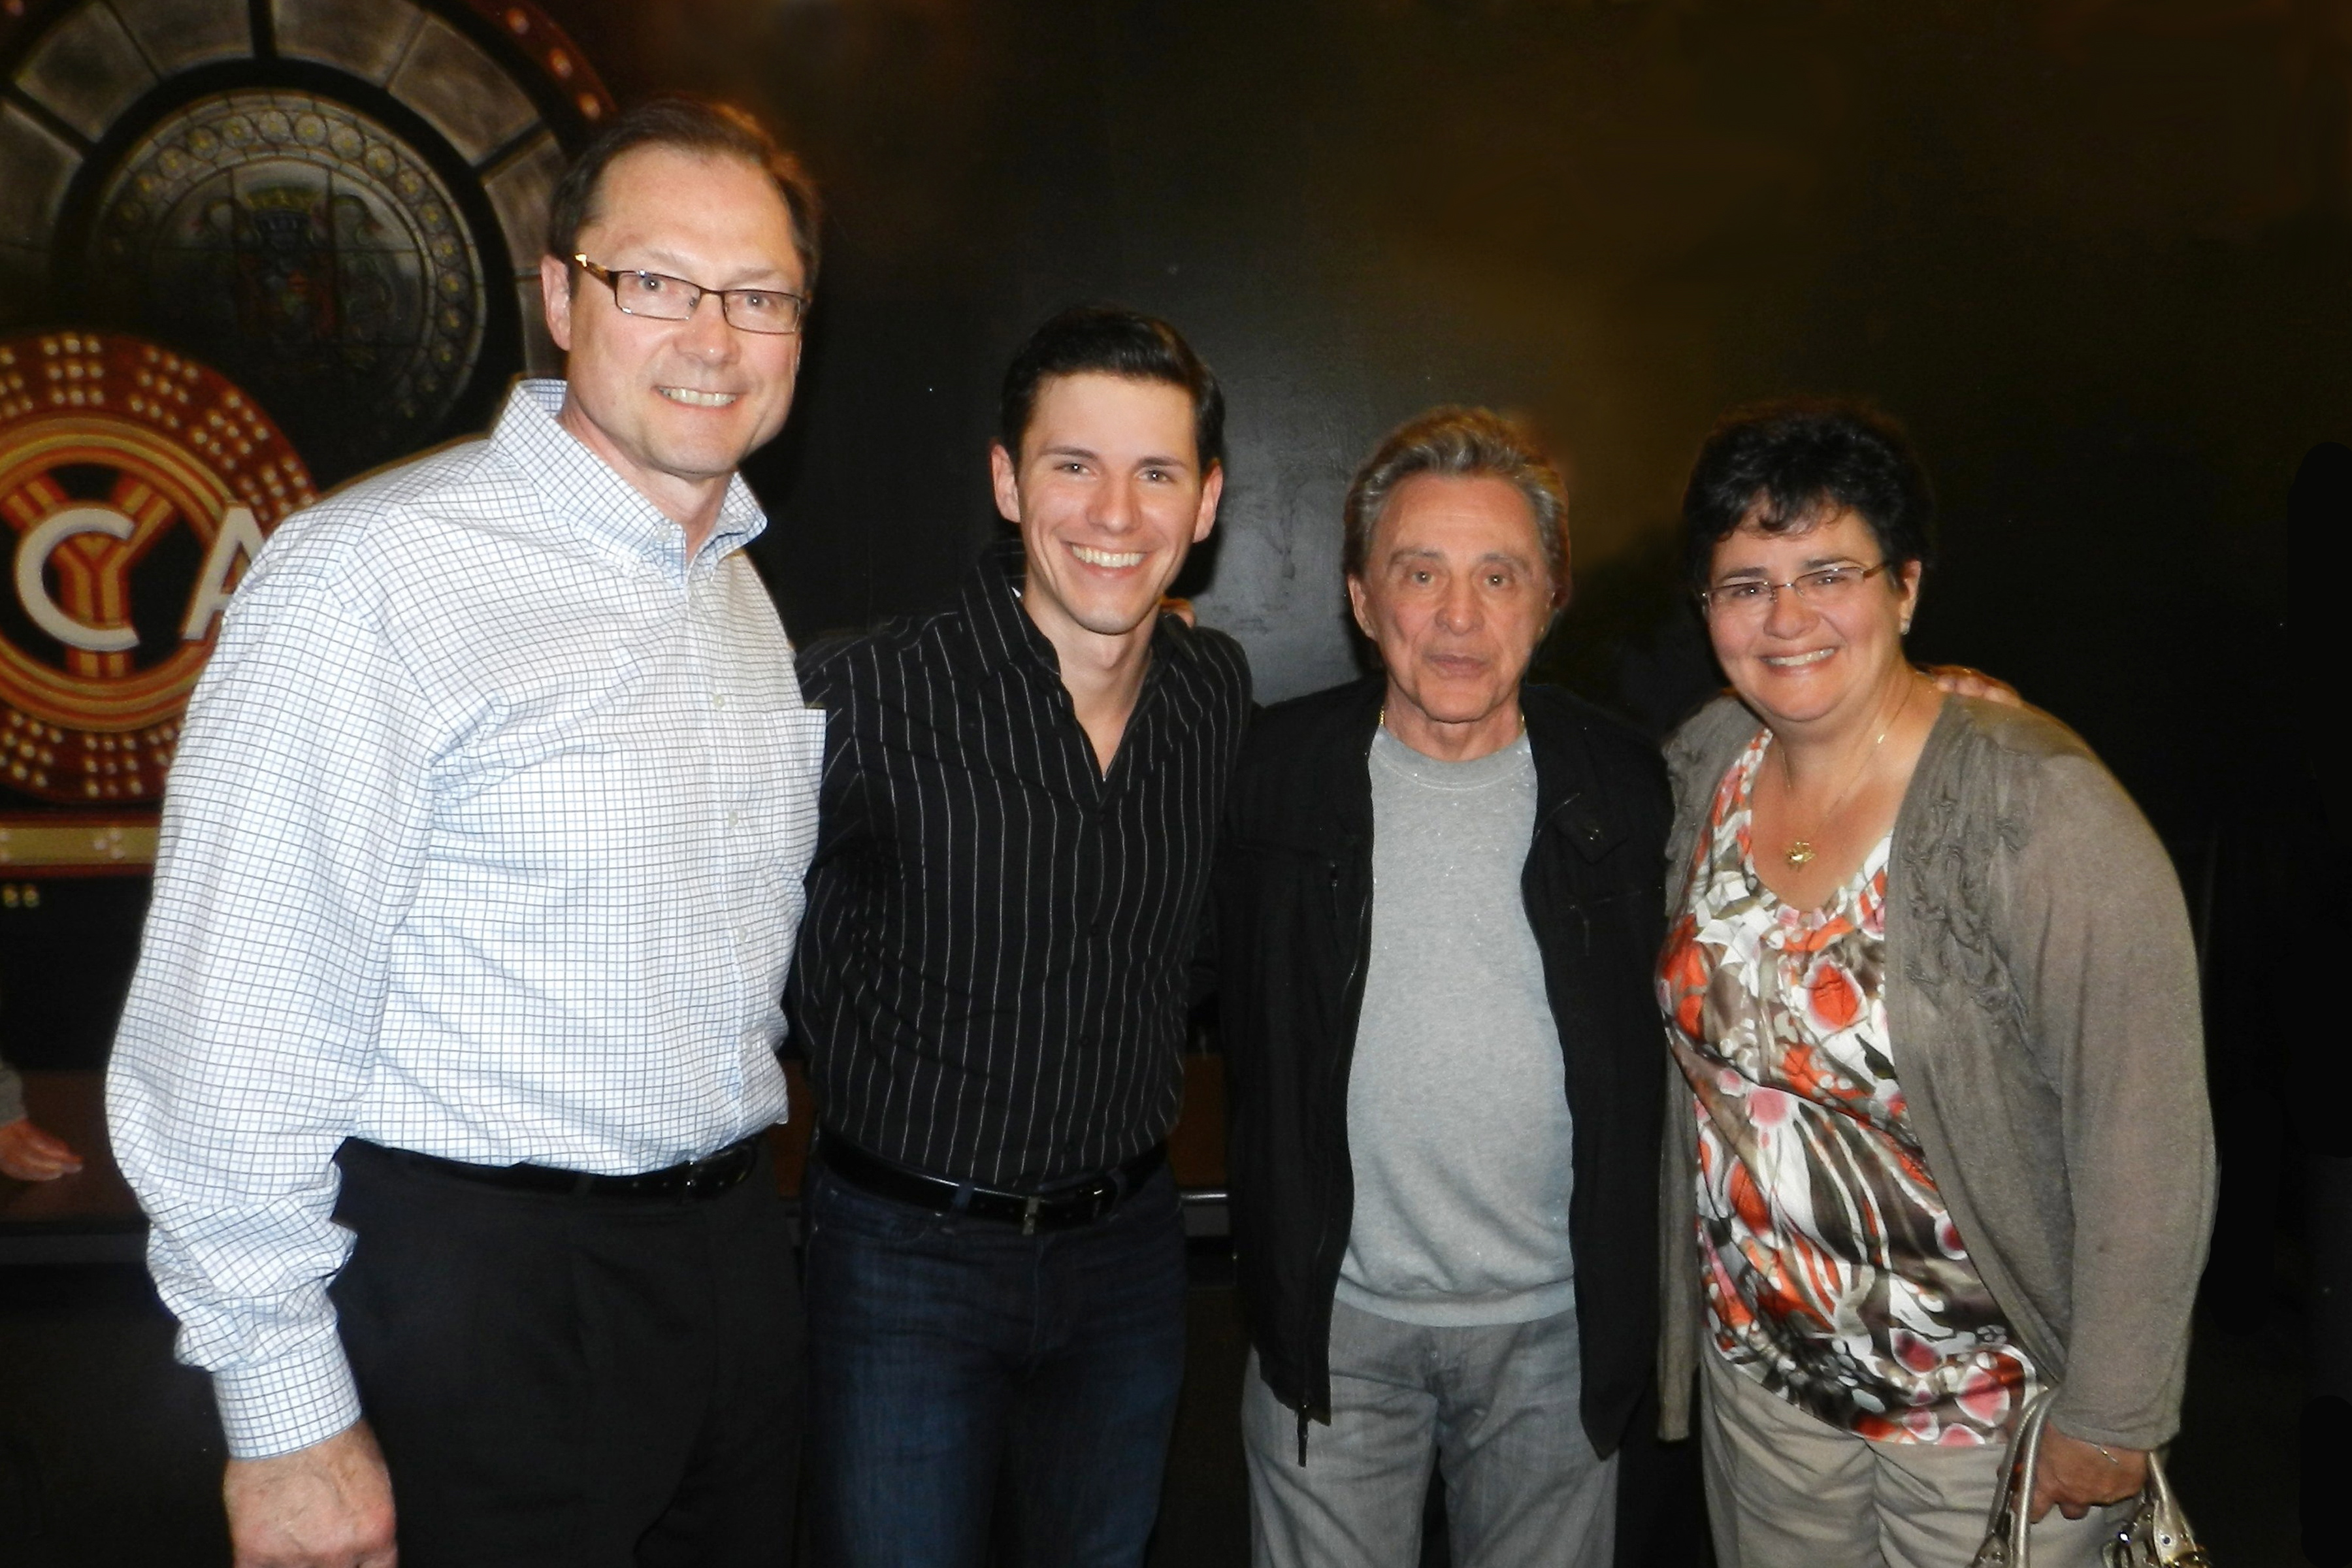 My parents and I with Frankie Valli